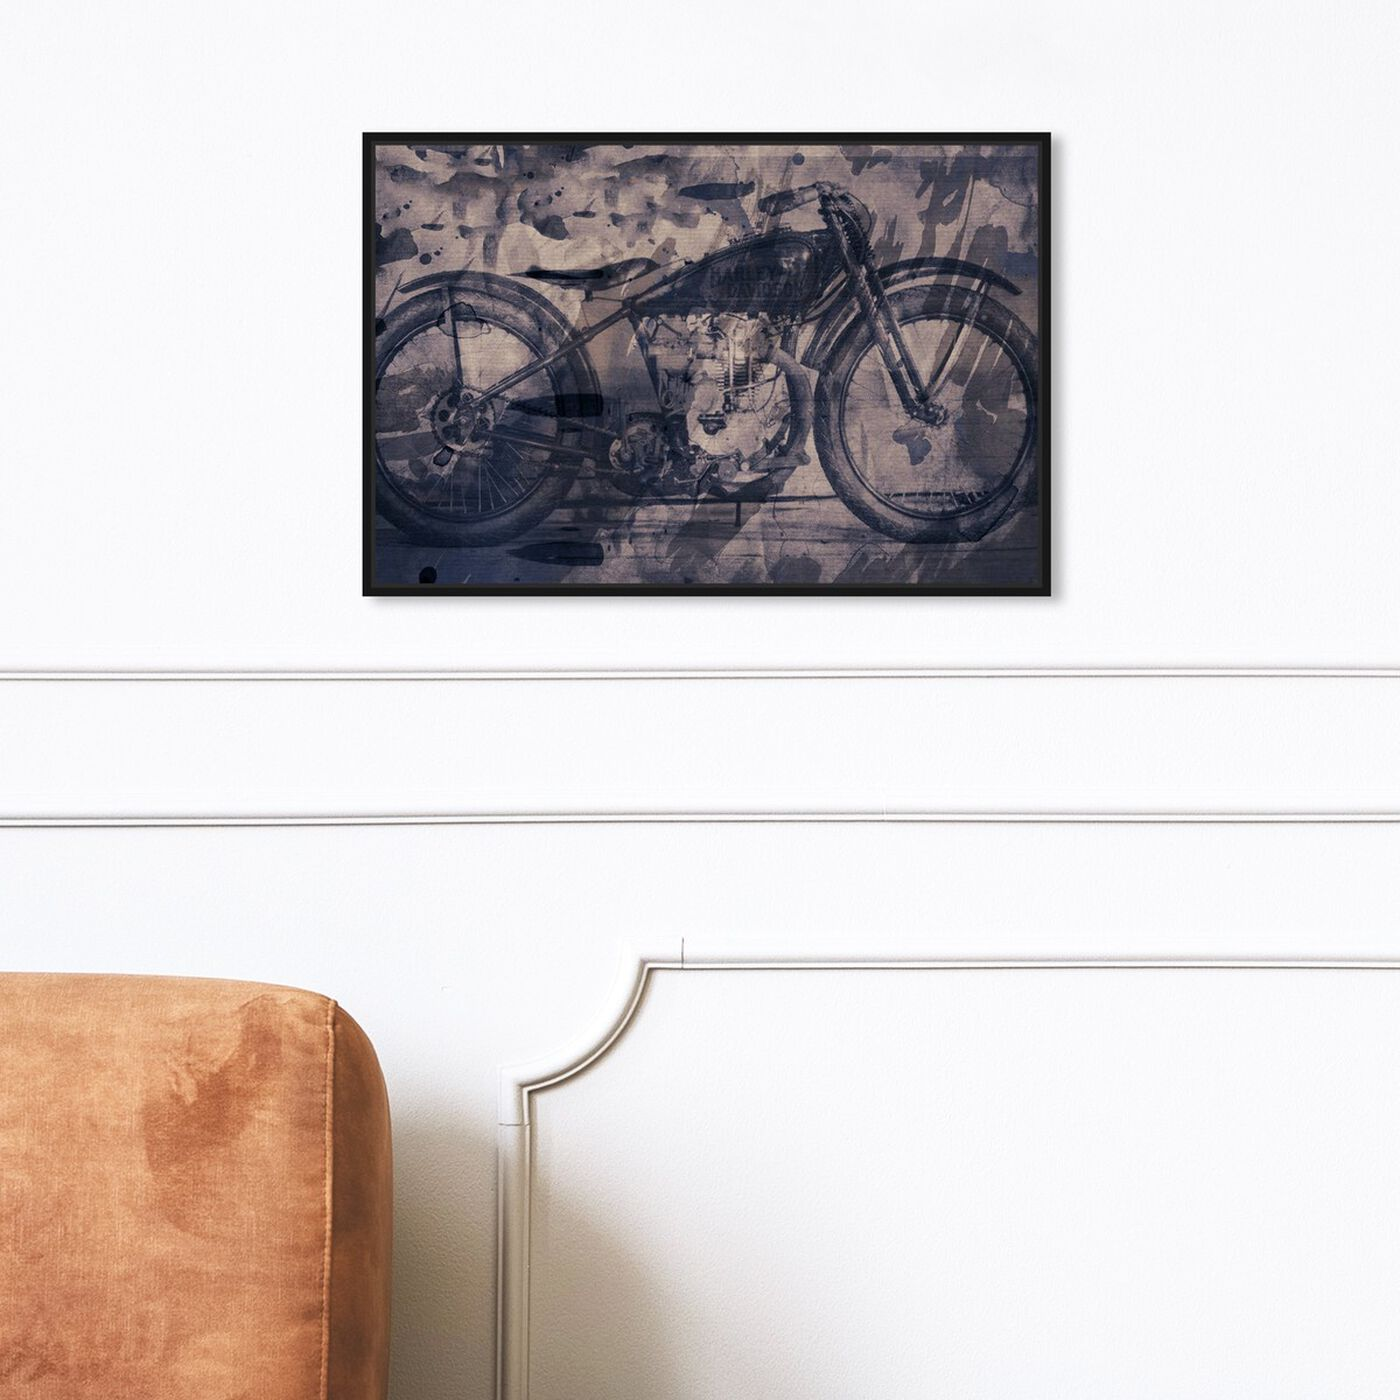 Hanging view of Vintage Bike featuring transportation and motorcycles art.